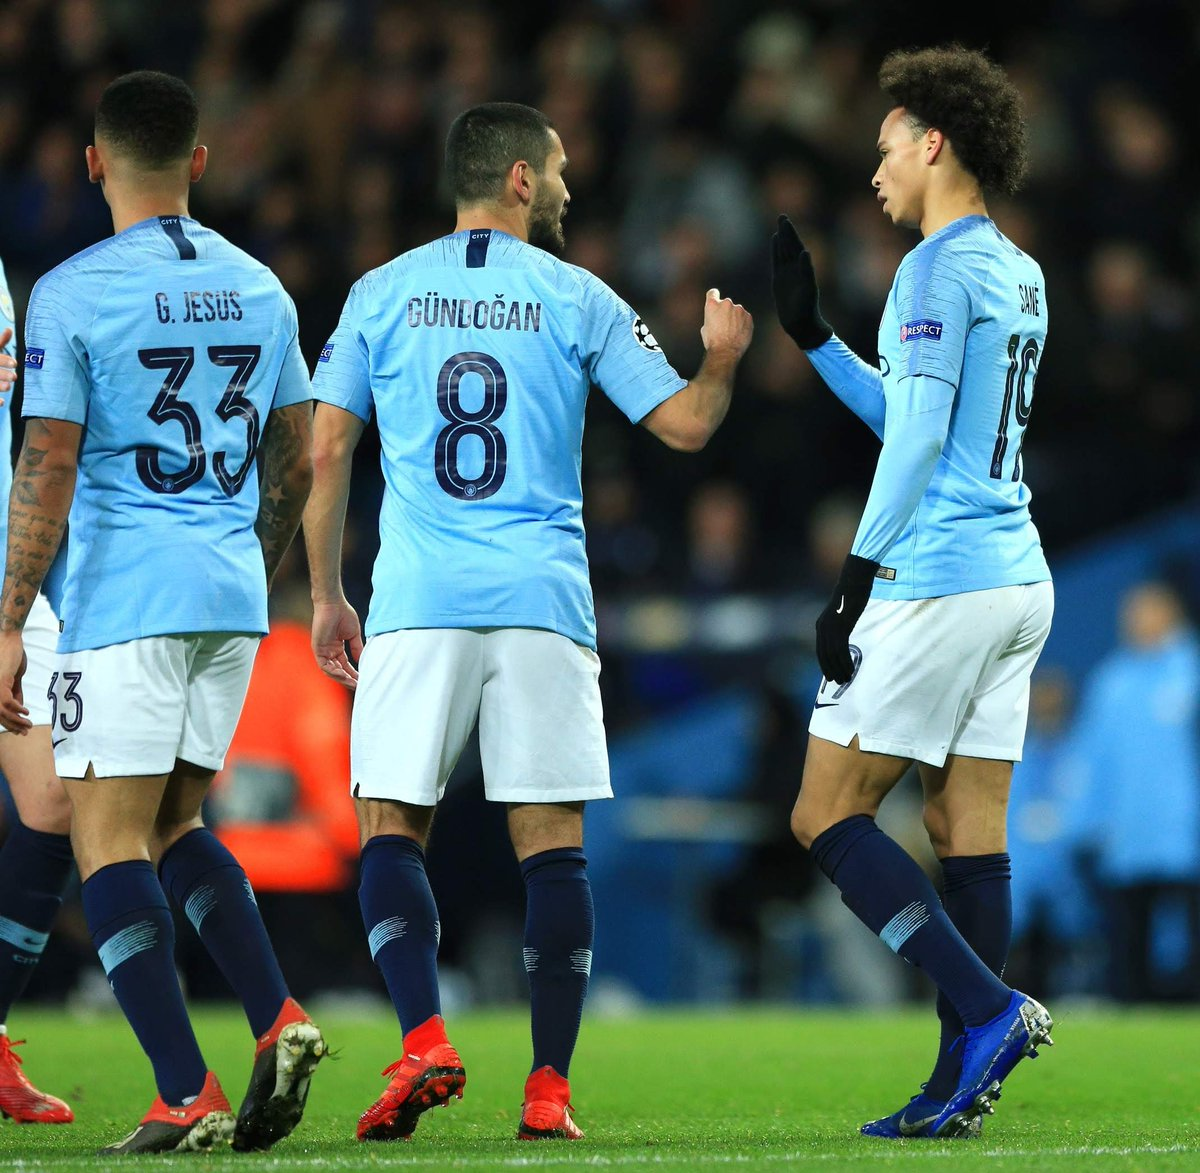 Gr8 to finish group F on top! 🎱⚽ Happy for @LeroySane19 _ finally the hard work pays off 😉 #inSané freekick goal! 🚀🔥#CMONCITY #UCL @ManCity